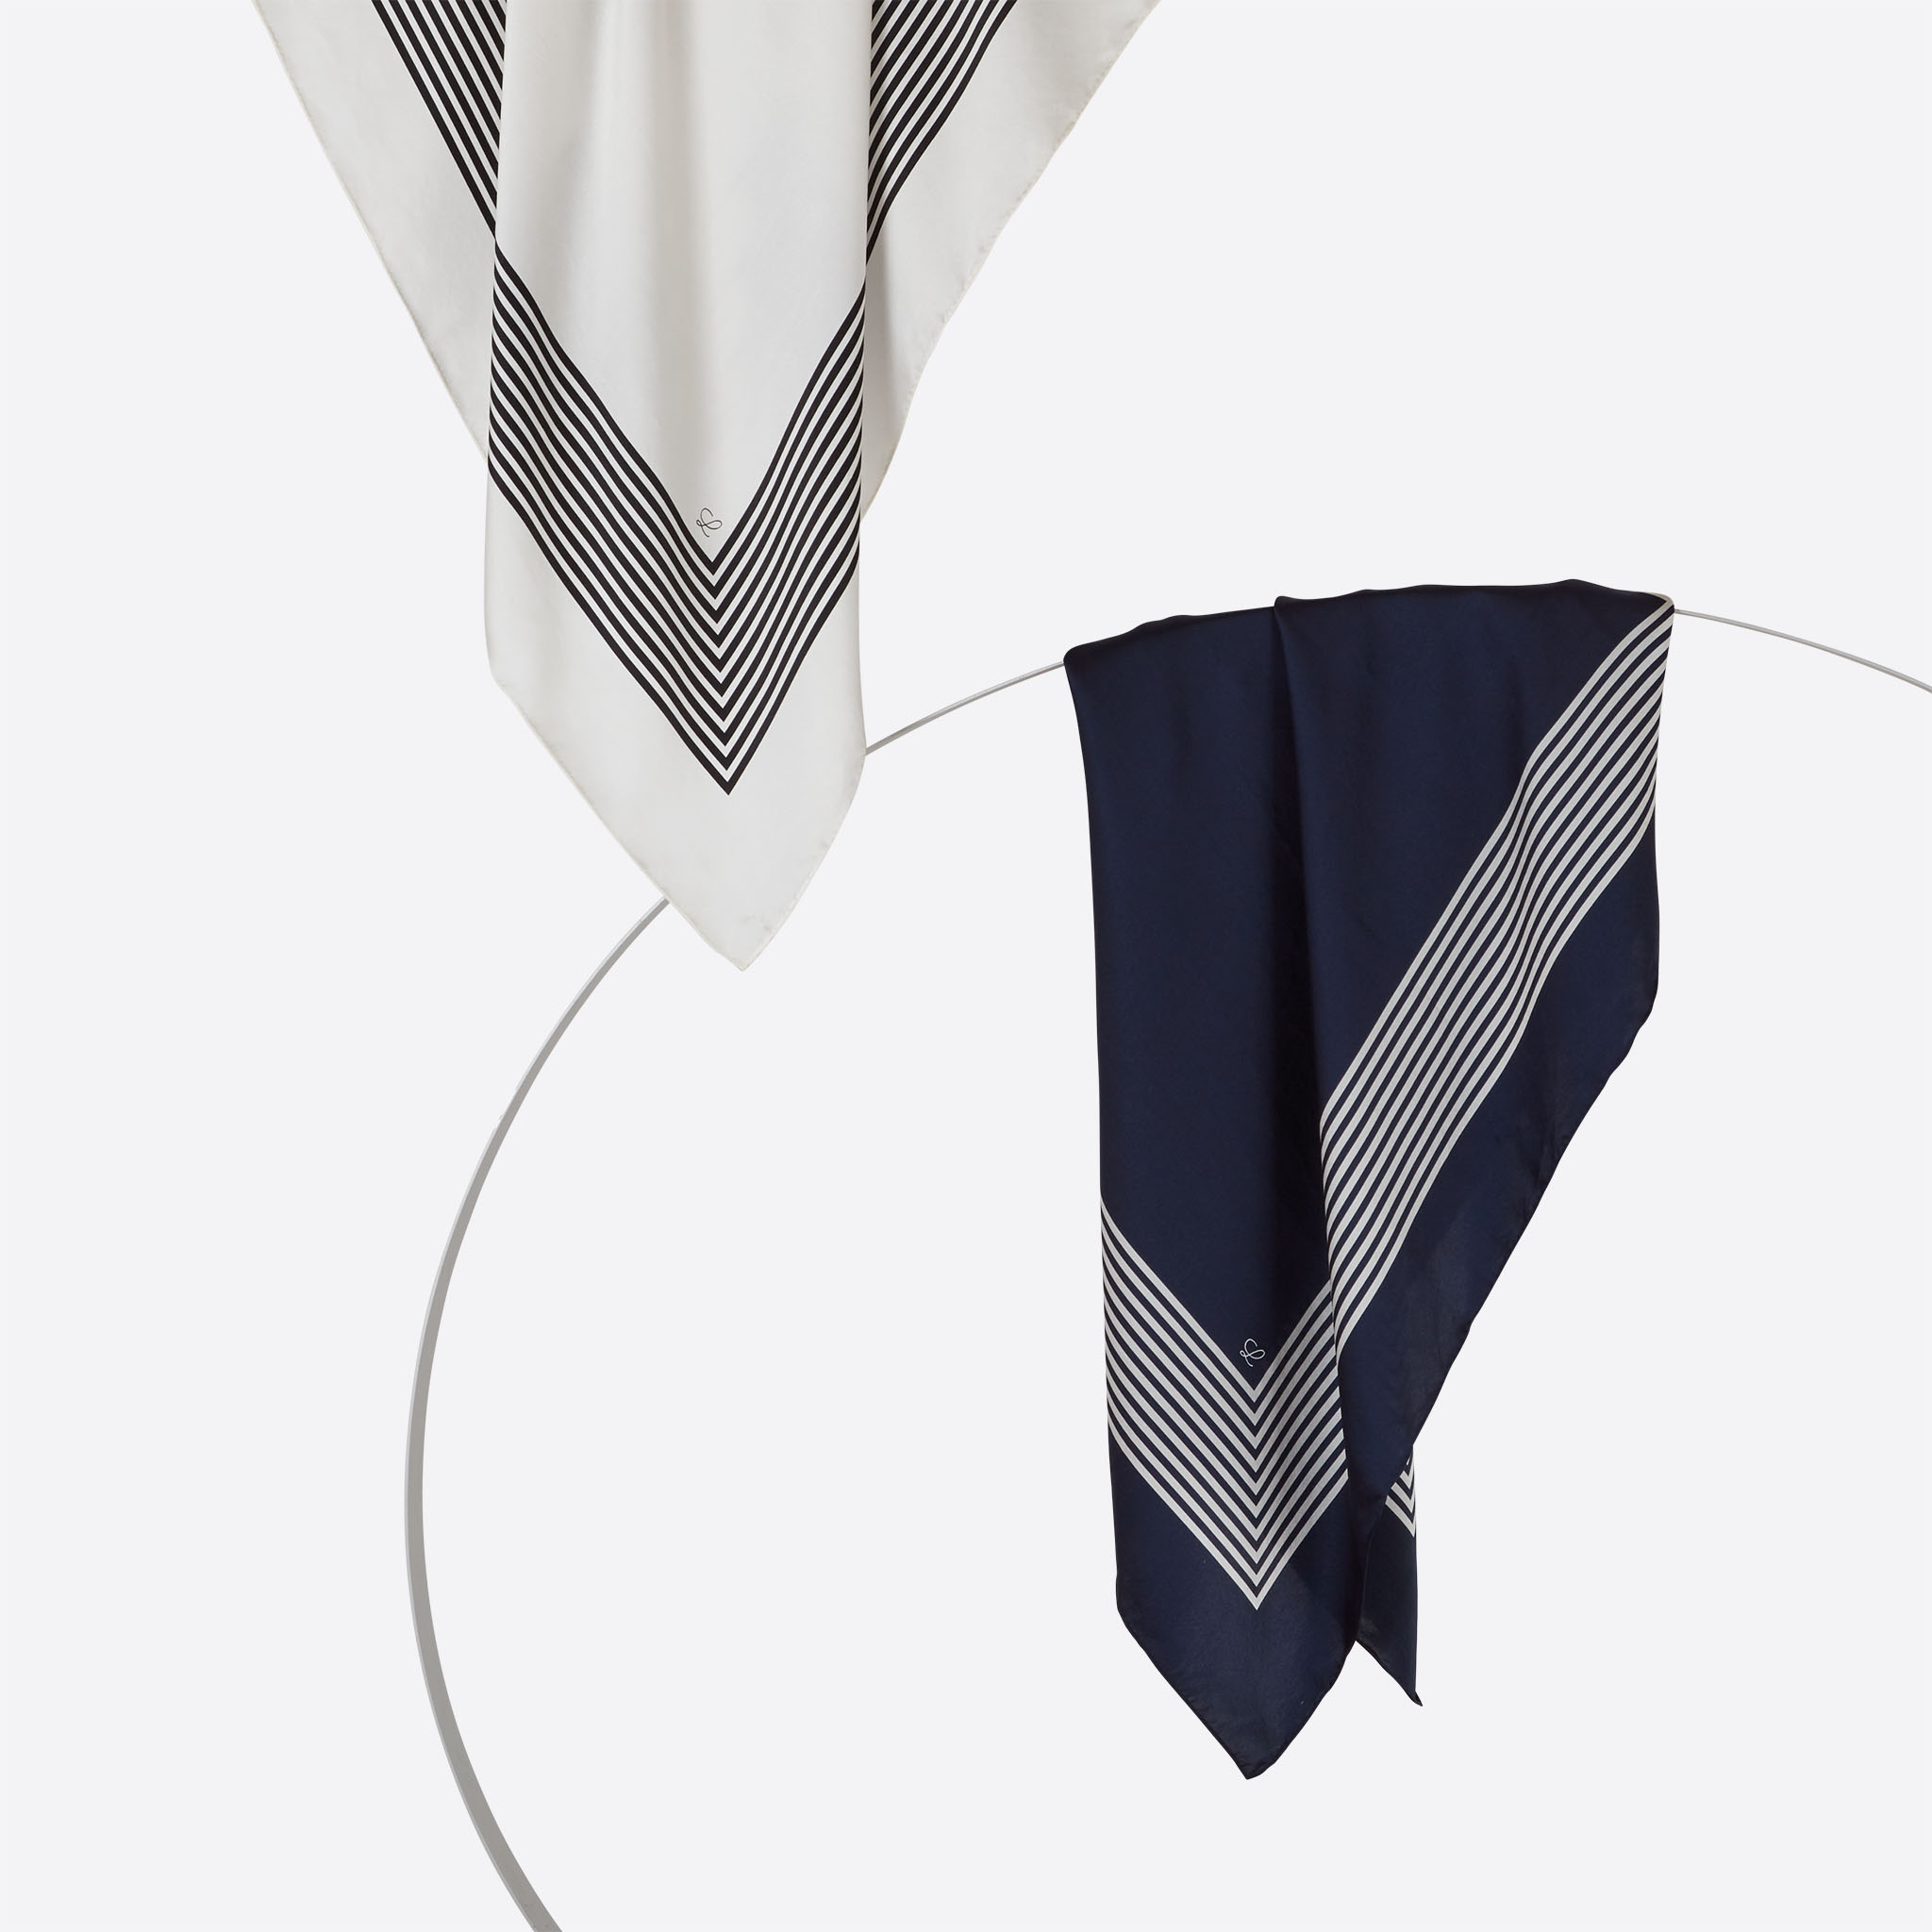 Lalouette white and navy striped square silk scarves styled